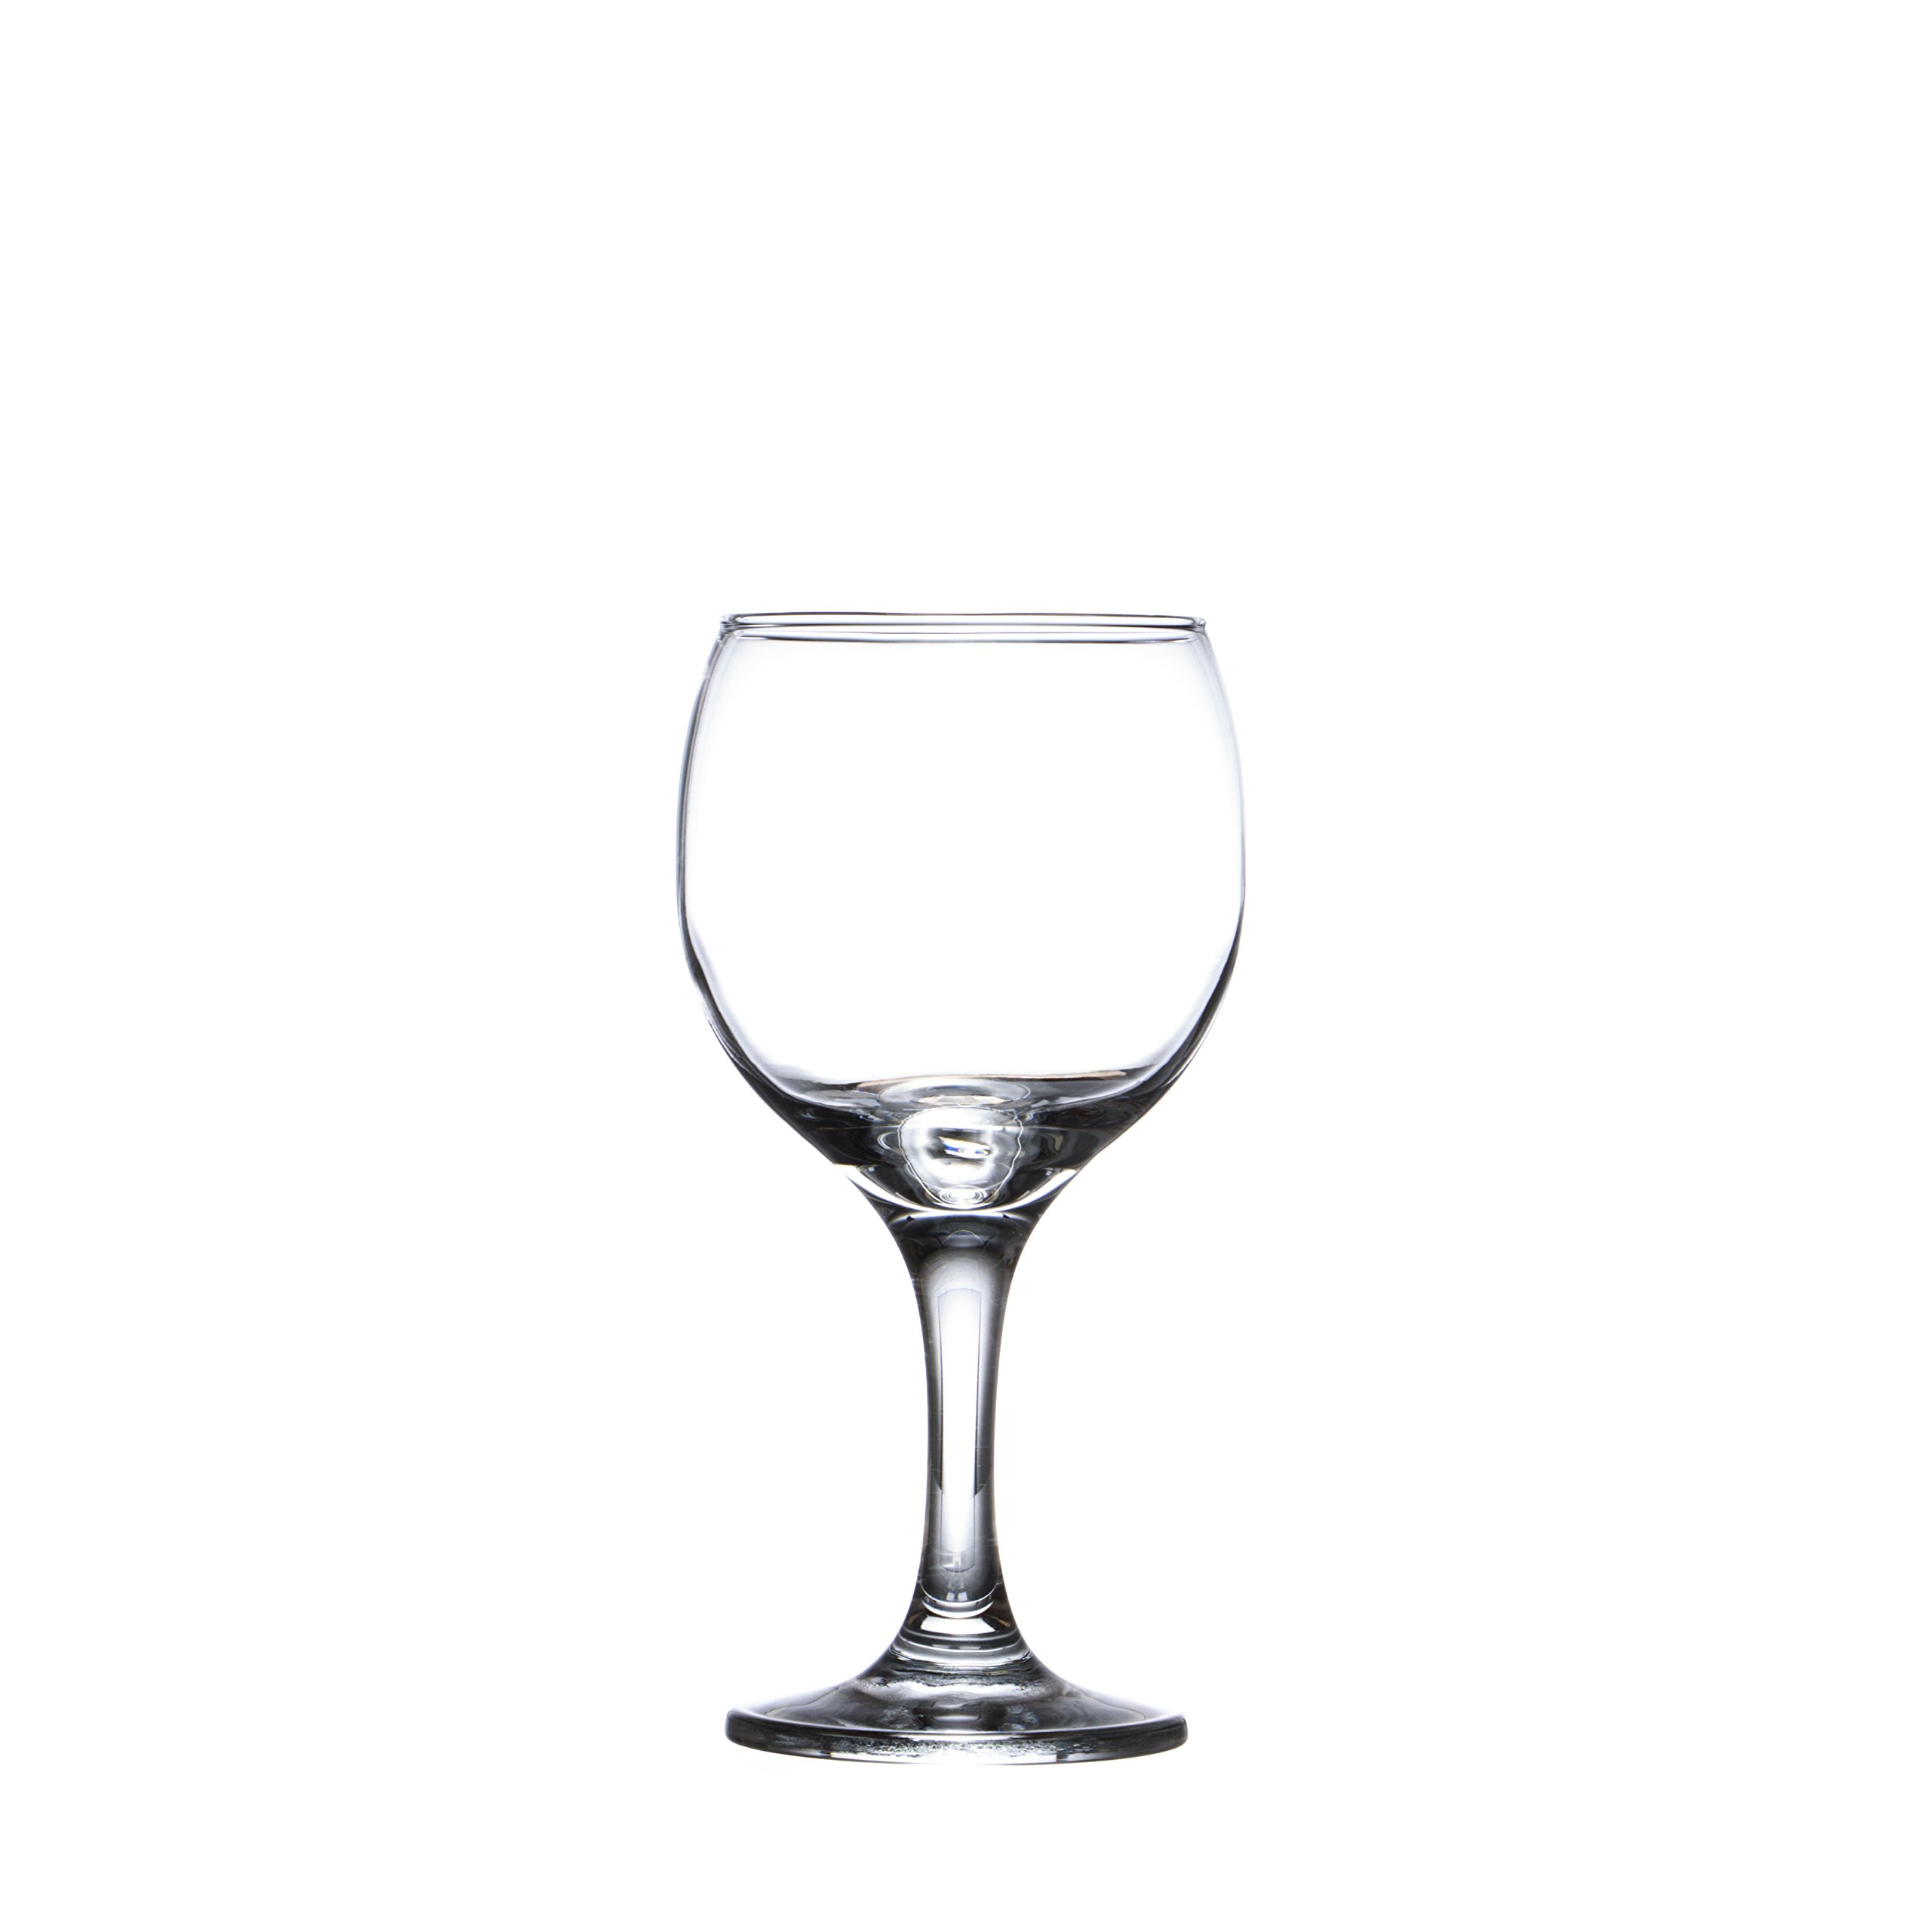 BISTRO 12-piece Wine Glasses Set (in 3 size), White, Red and Liquor Wine, Restaurant&Bar Quality, Durable Tempered Glass, Heavy Base, t.m. Pasabache (7 1/2 oz) by Pasabache (Image #7)